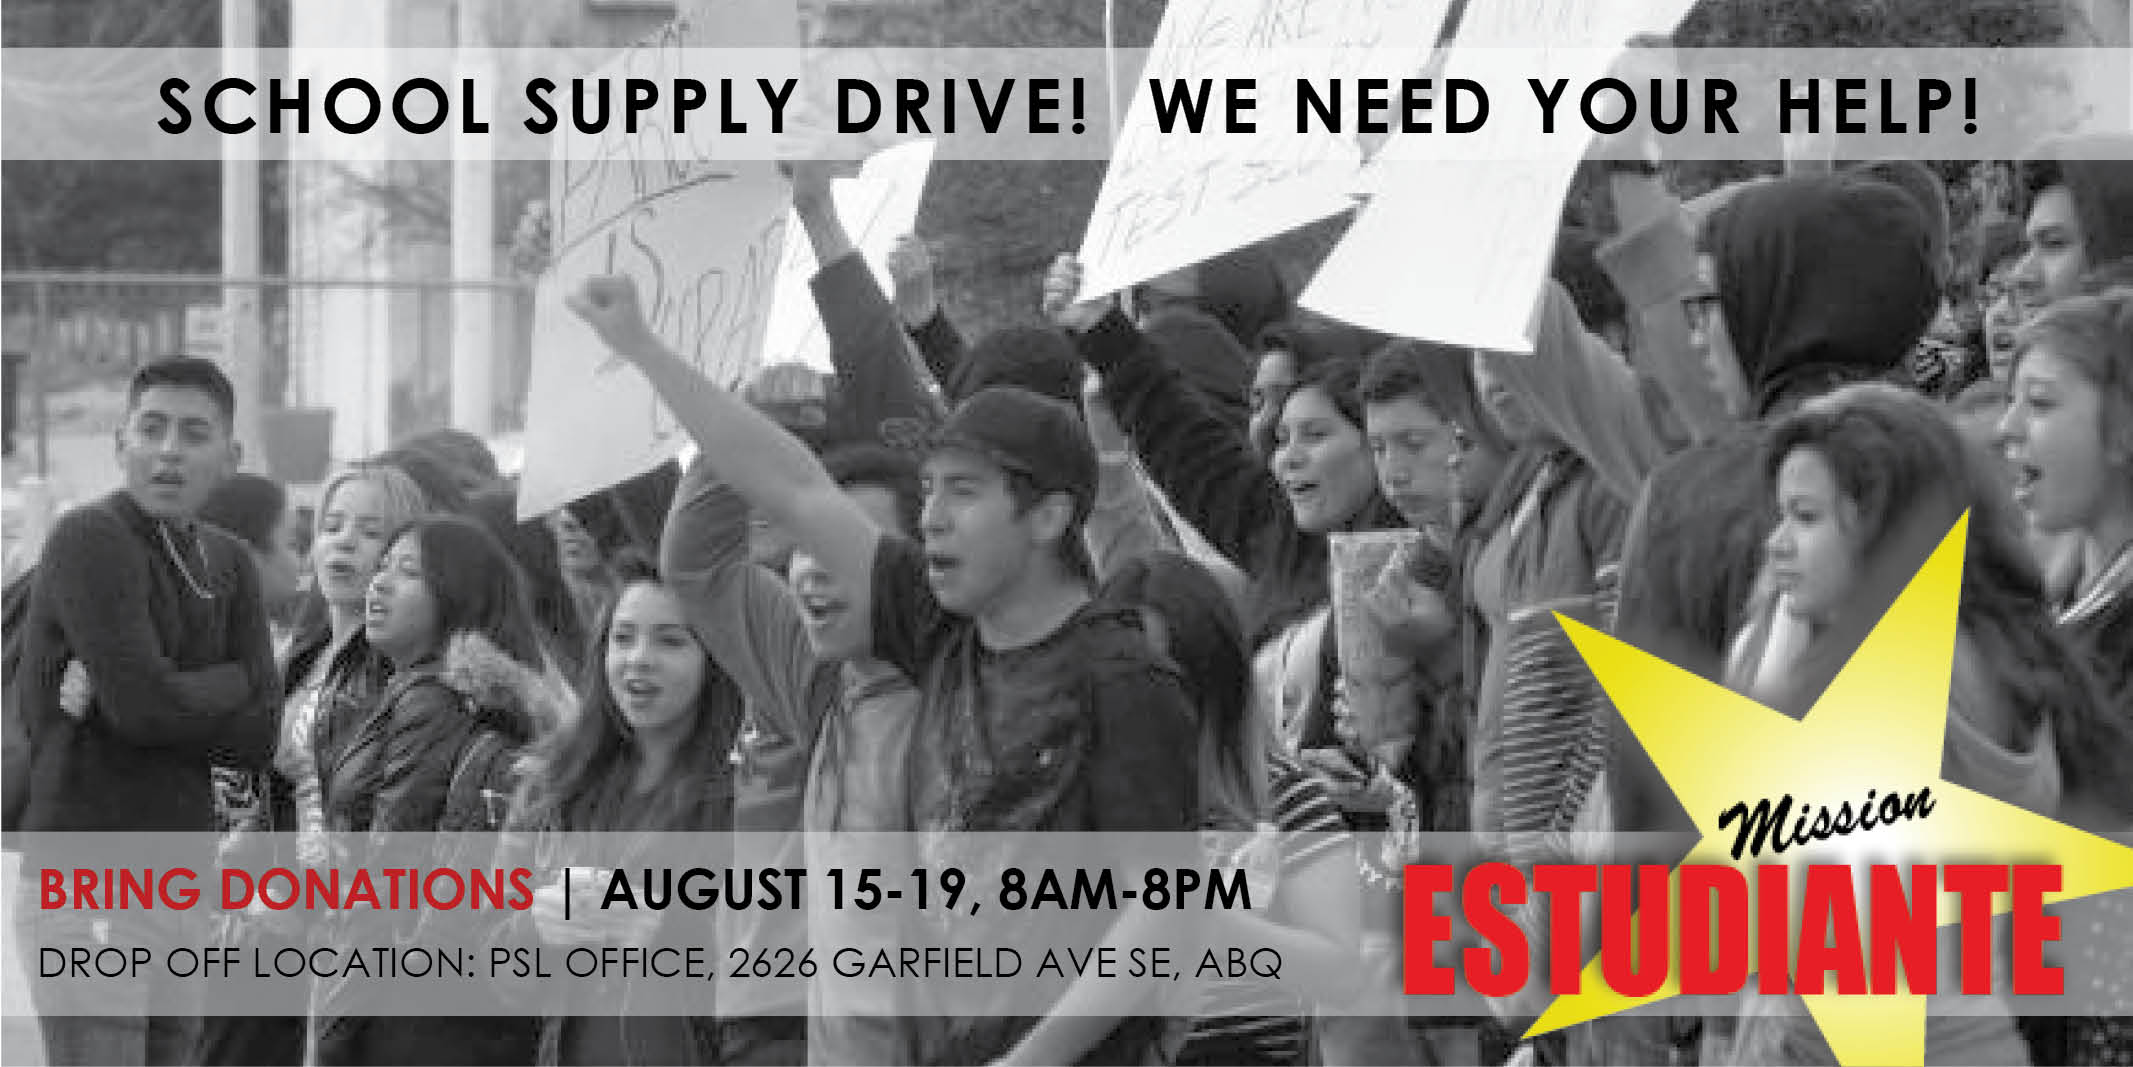 Photo of Mission Estudiante: PSL School Supply Drive, August 15-19